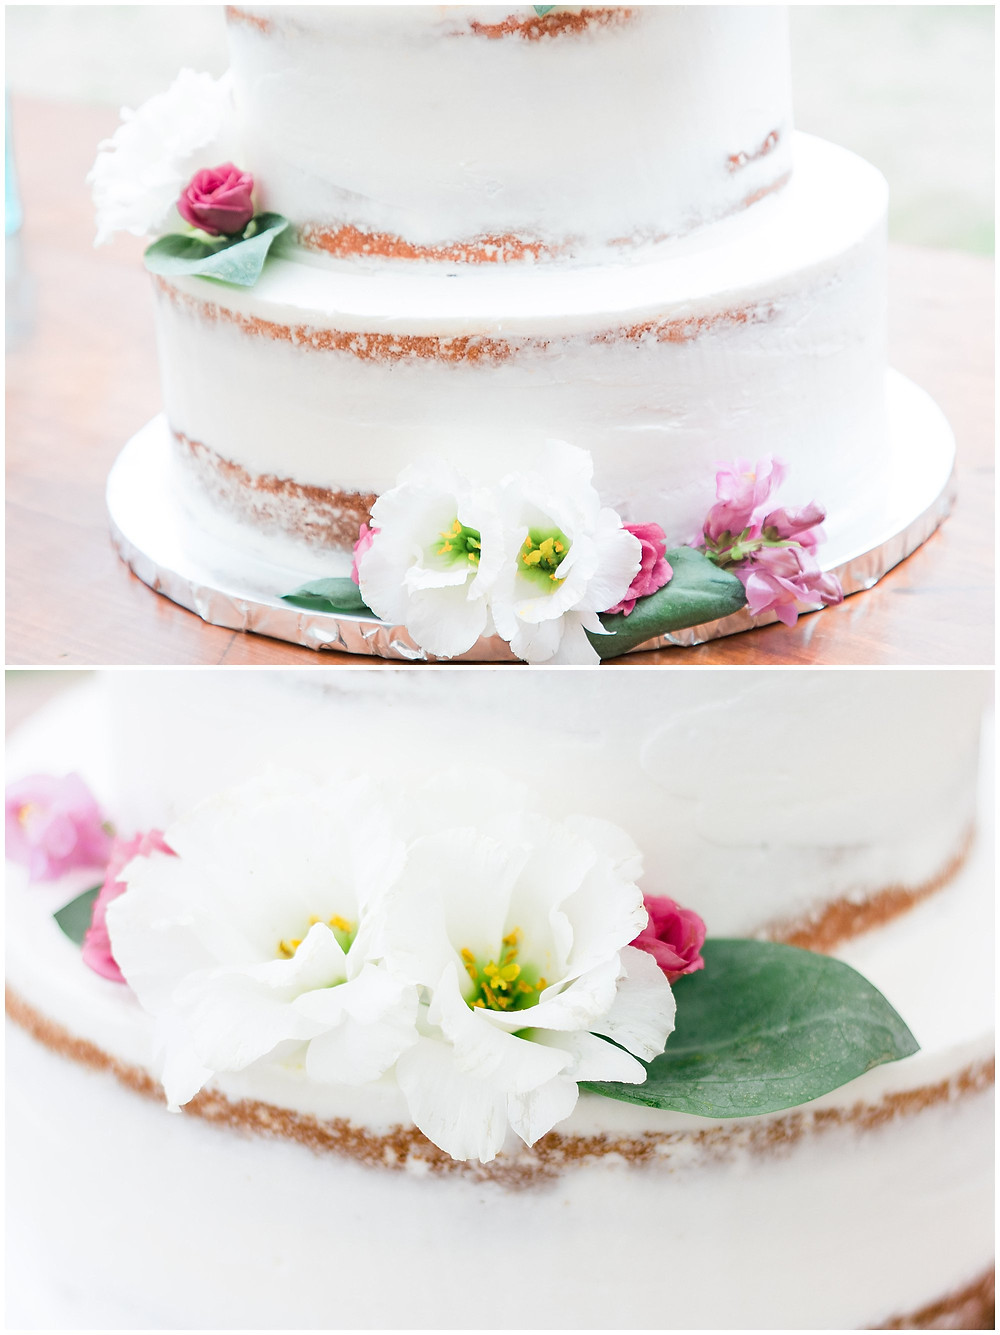 Tiny details of the naked wedding cake with flowers on each layer.